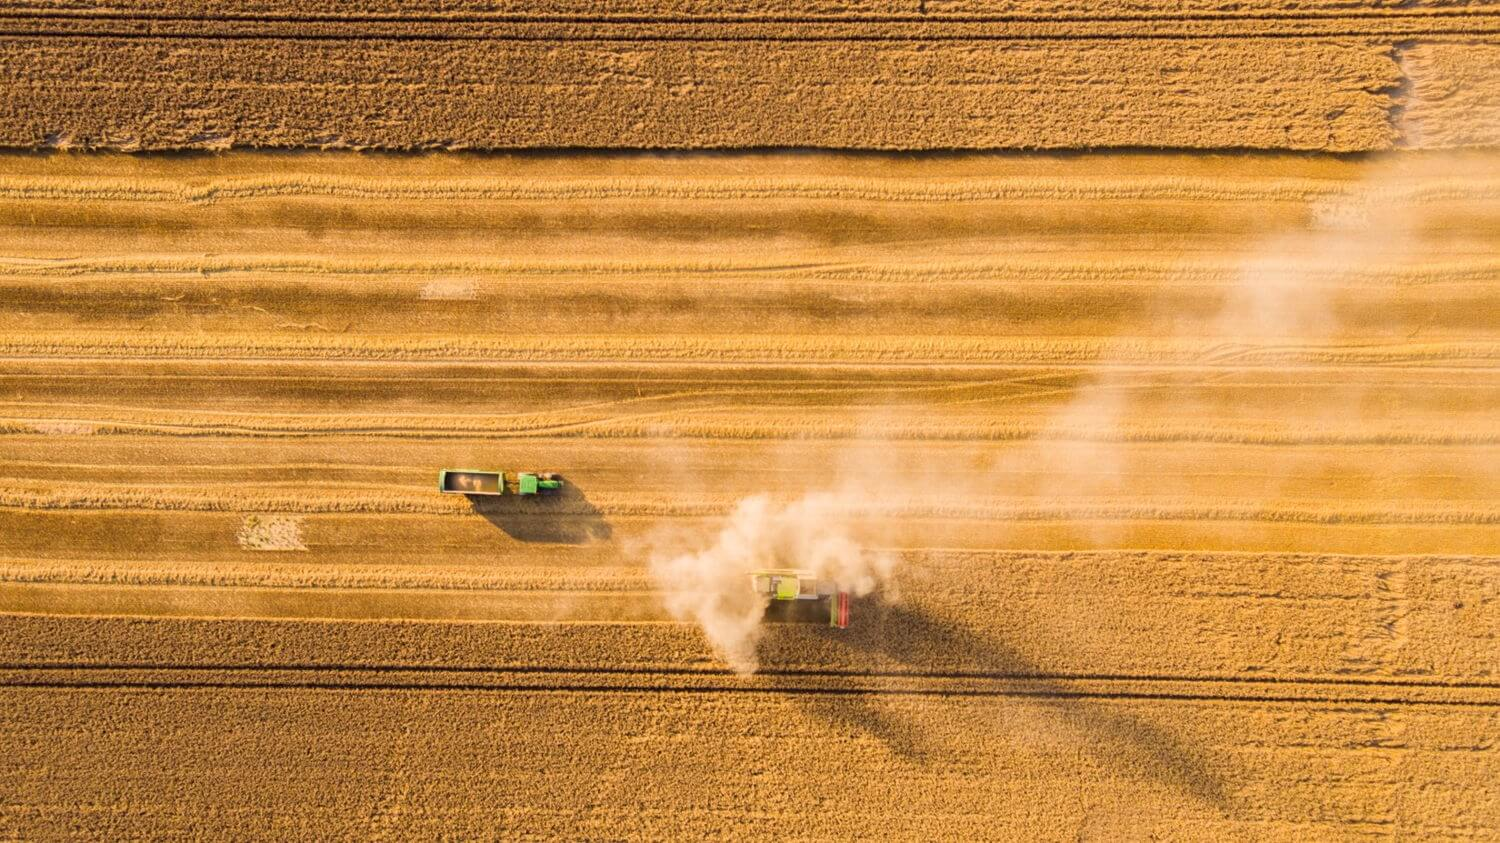 400ft Britain - Drone Photography & Videography Competition Launched By CAA & VisitEngland - Harvesting